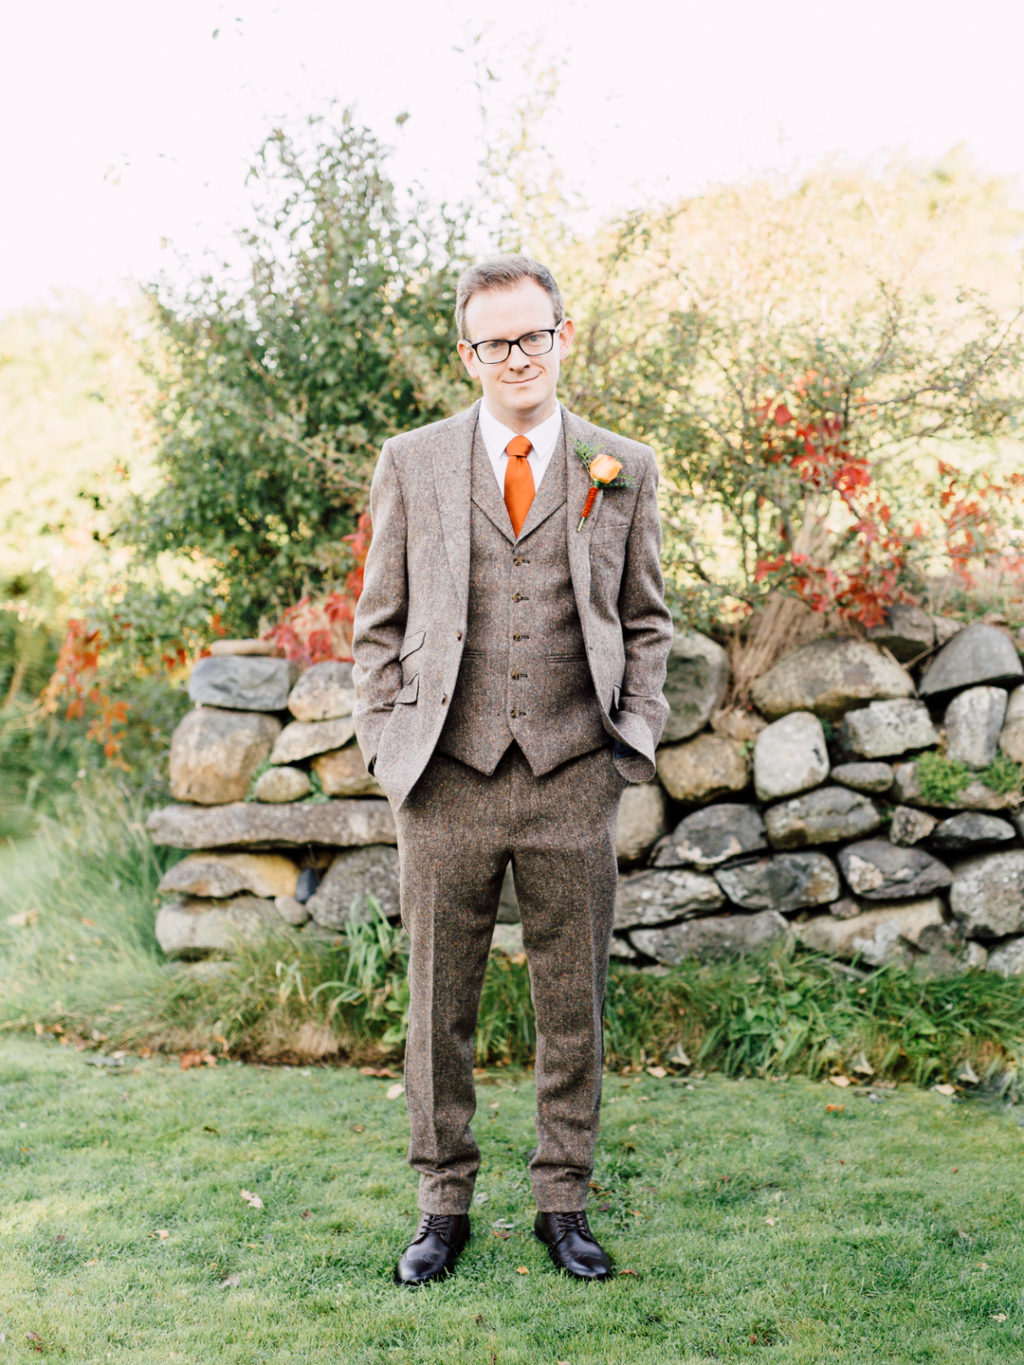 The groom was rocking a three piece tweed suit with a bright orange tie and black shoes